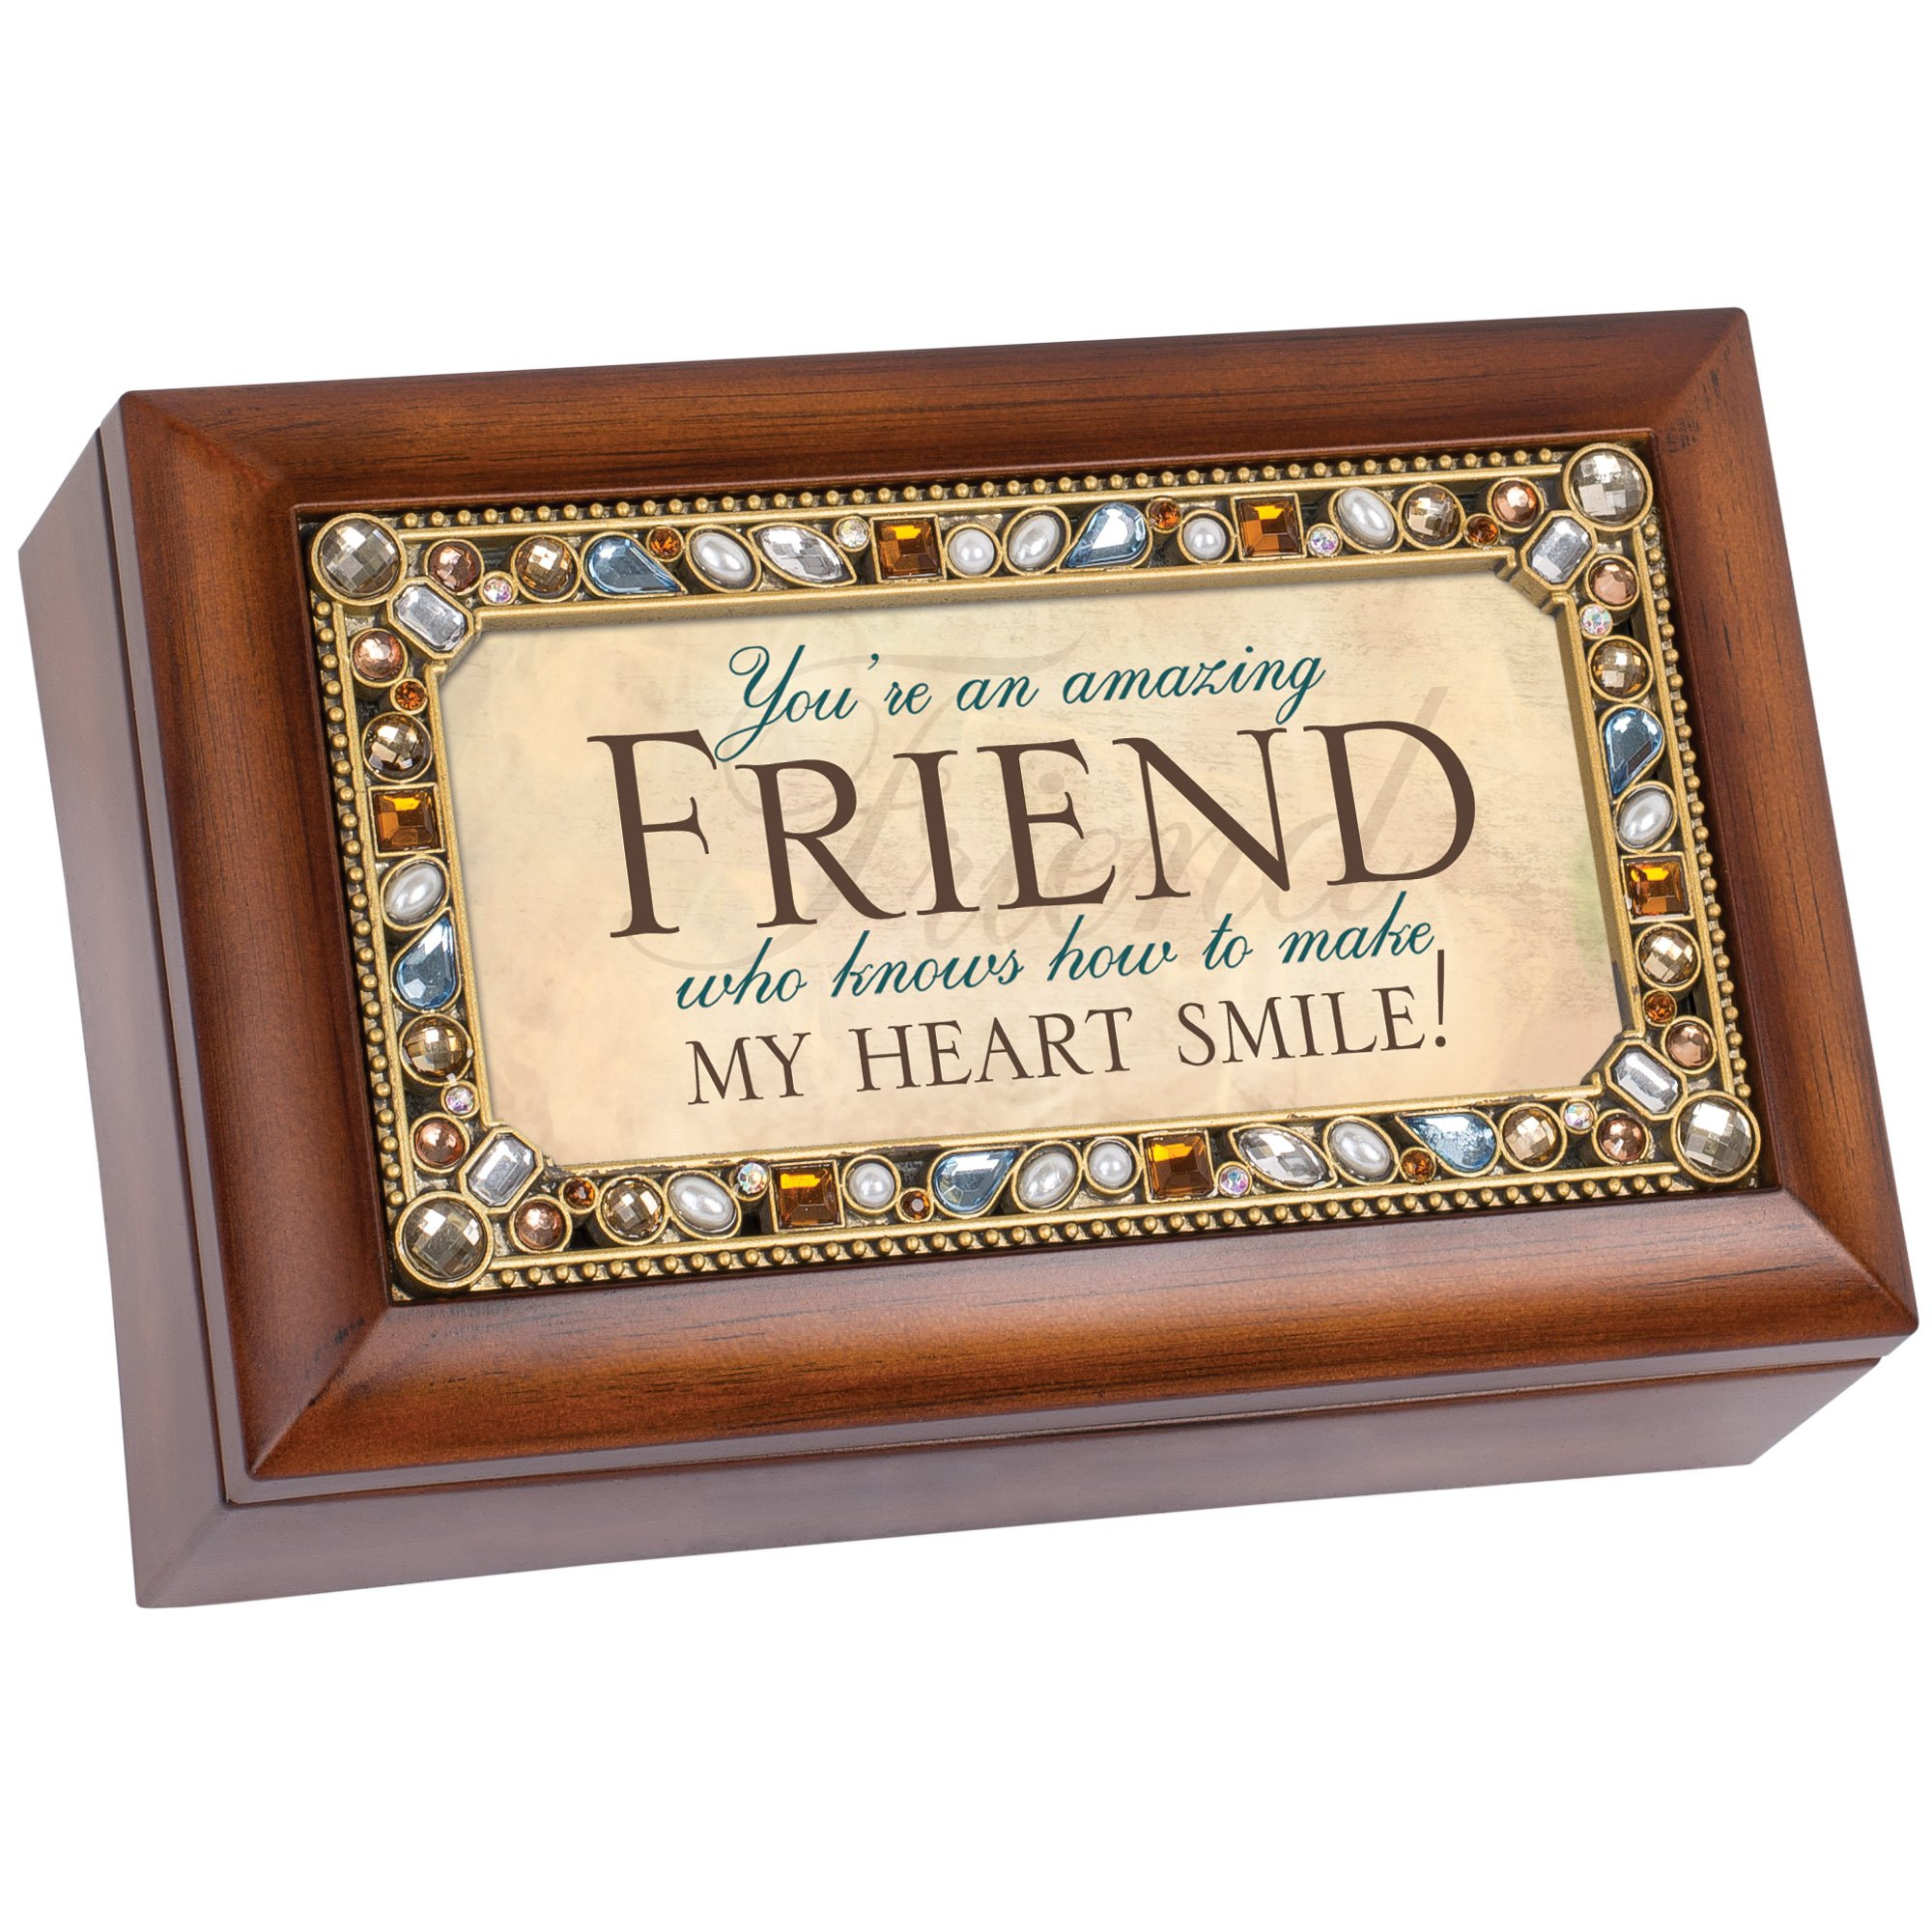 Cottage Garden Friend Jeweled Woodgrain Jewelry Music Box - Plays Tune Thats What Friends Are For by Cottage Garden (Image #1)